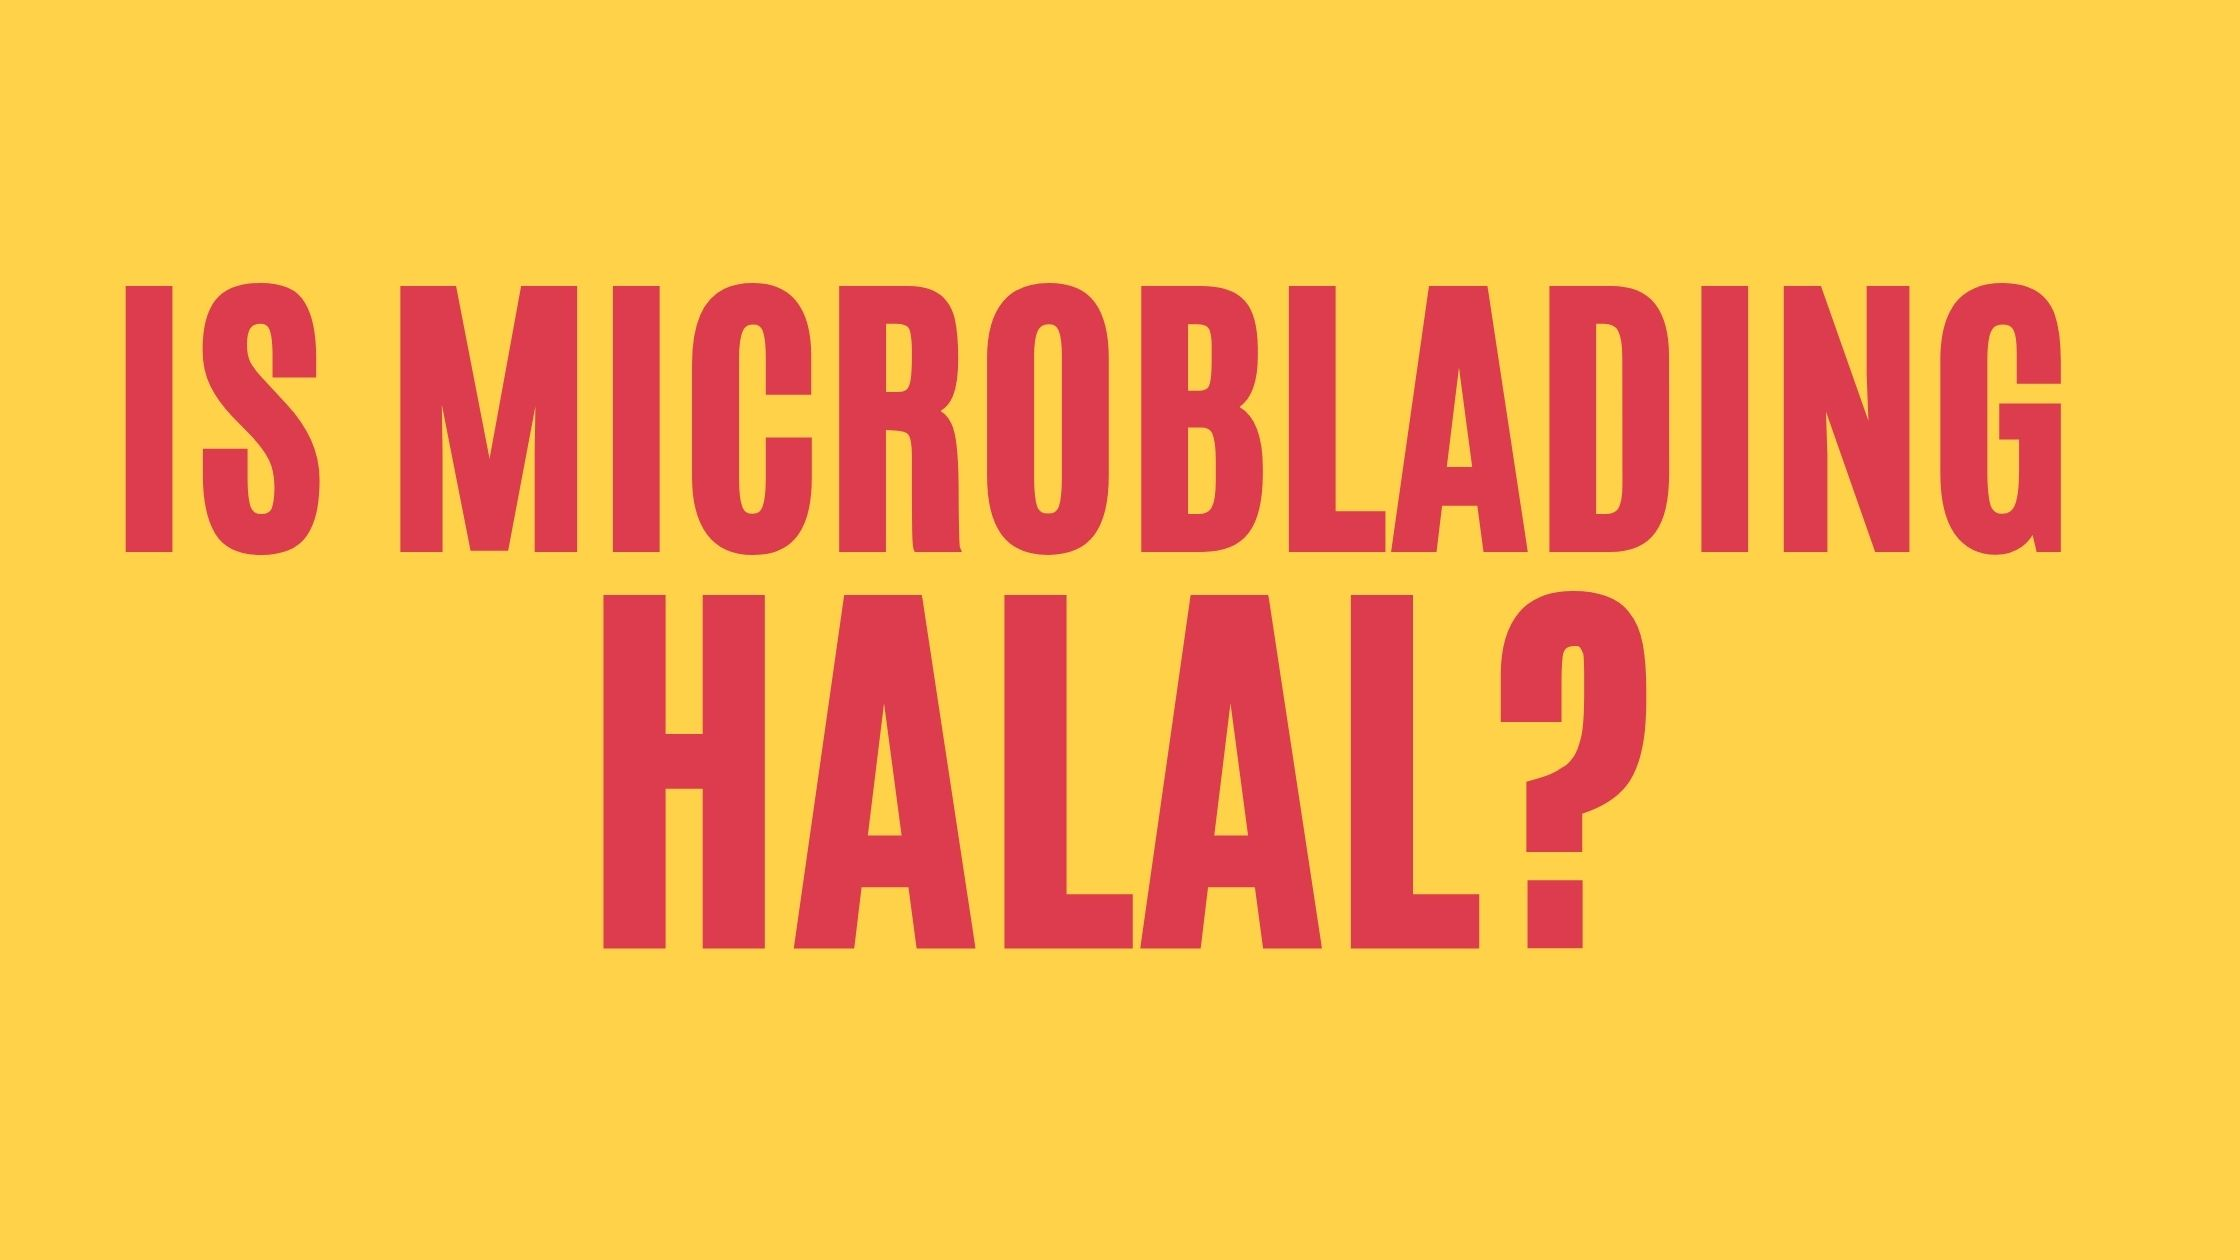 is microblading halal